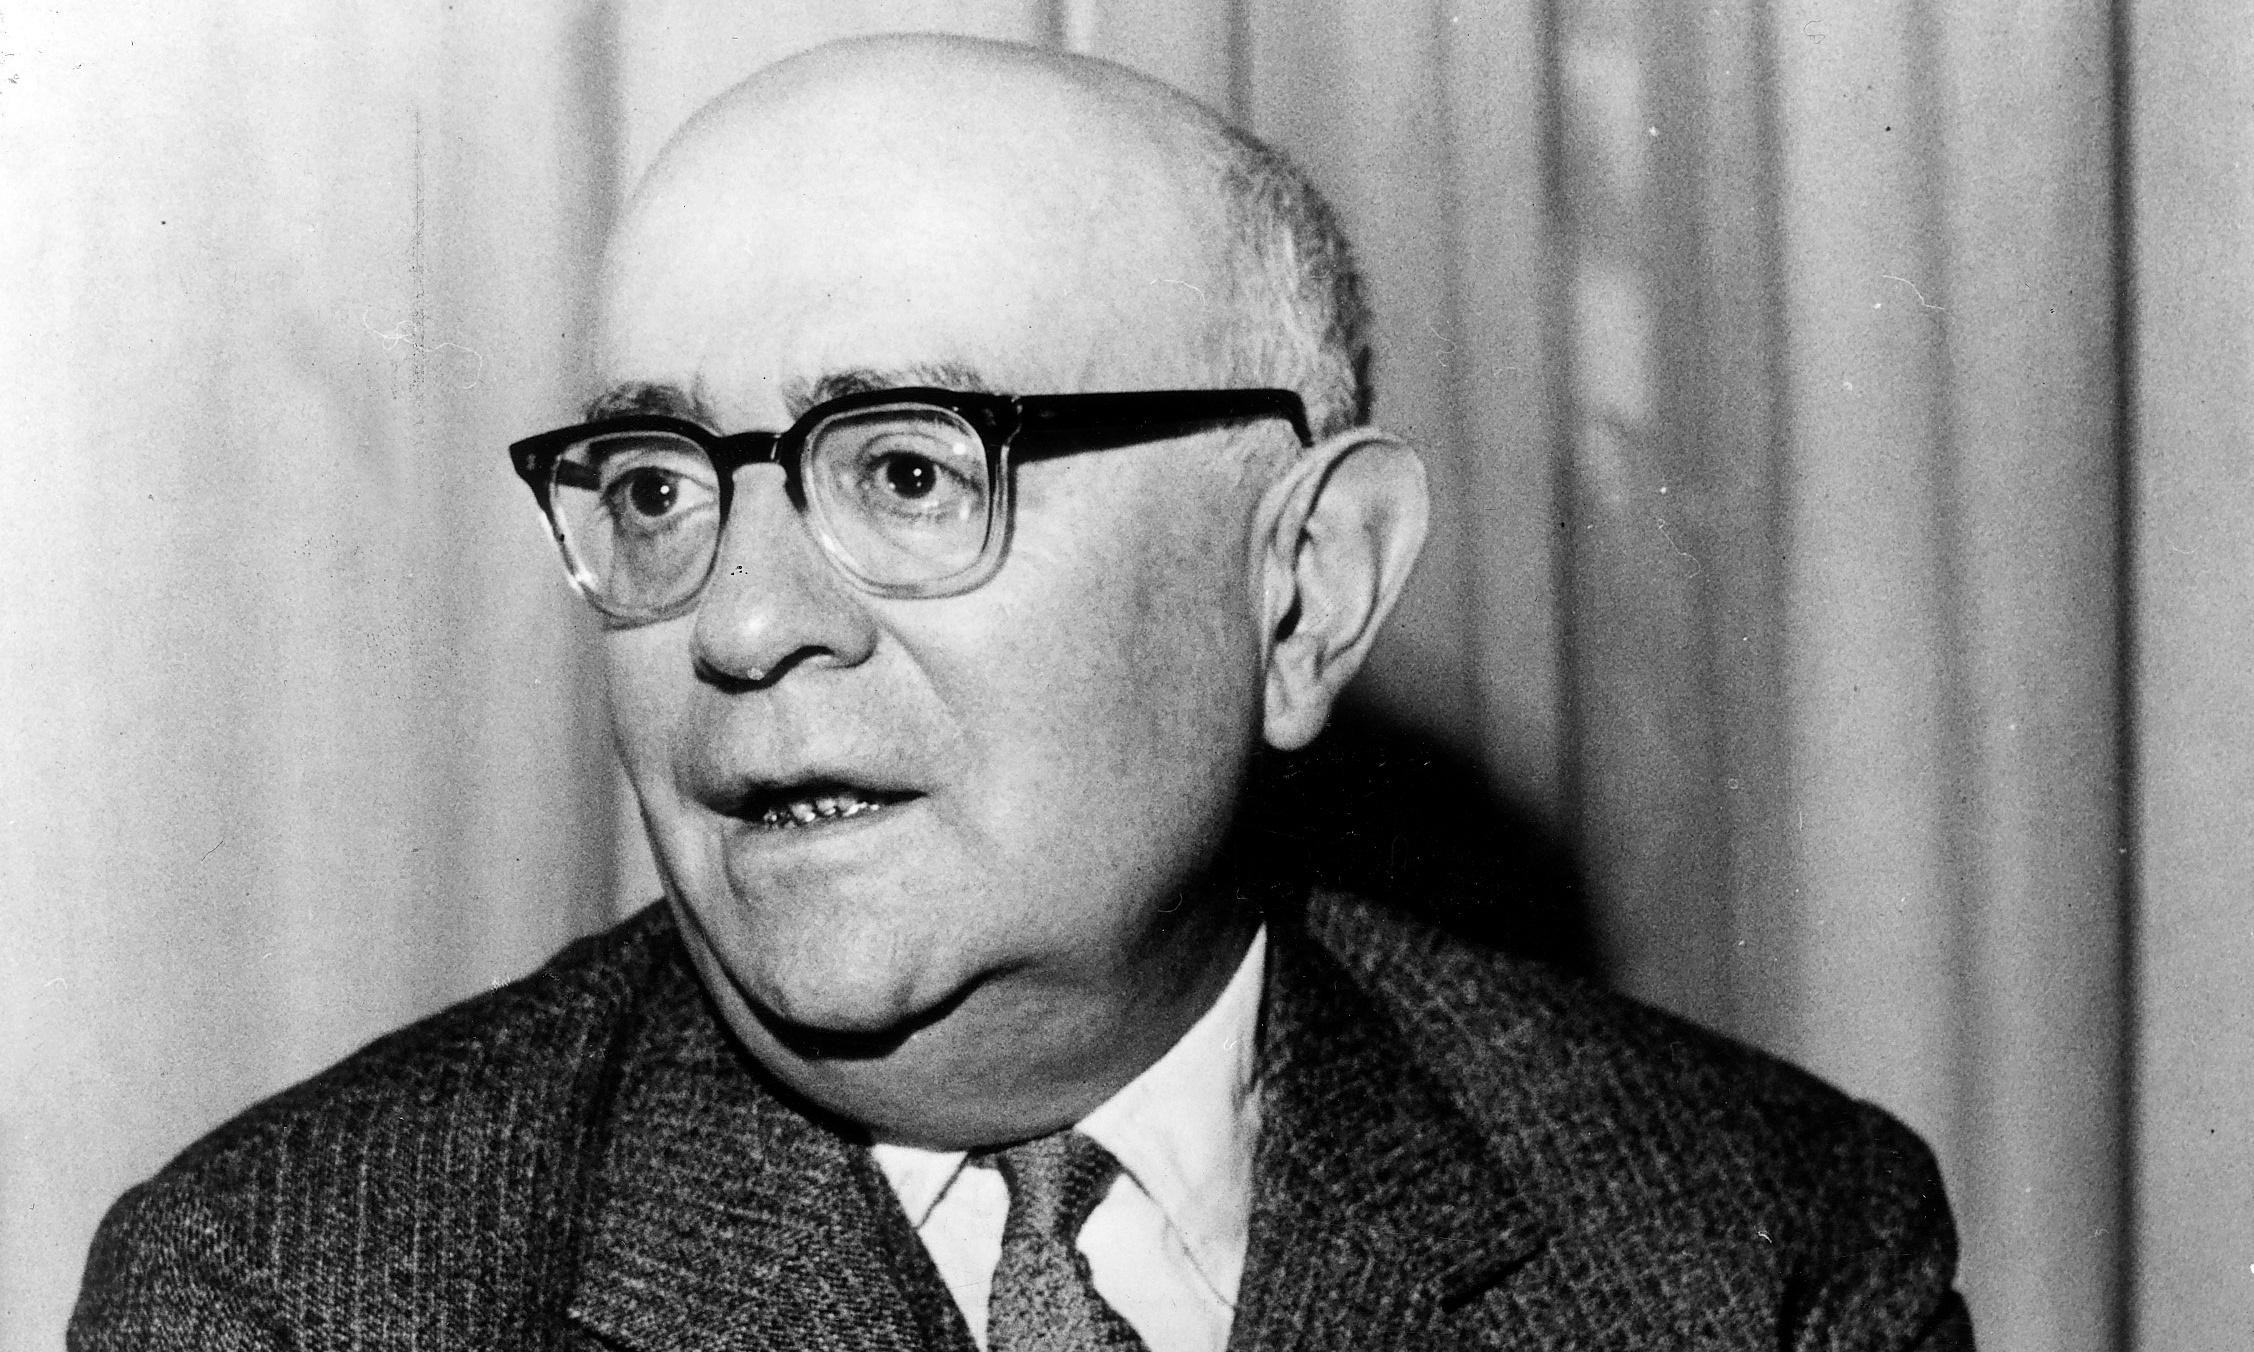 A little help from my neo-Marxist philosopher: was Adorno the fifth Beatle?